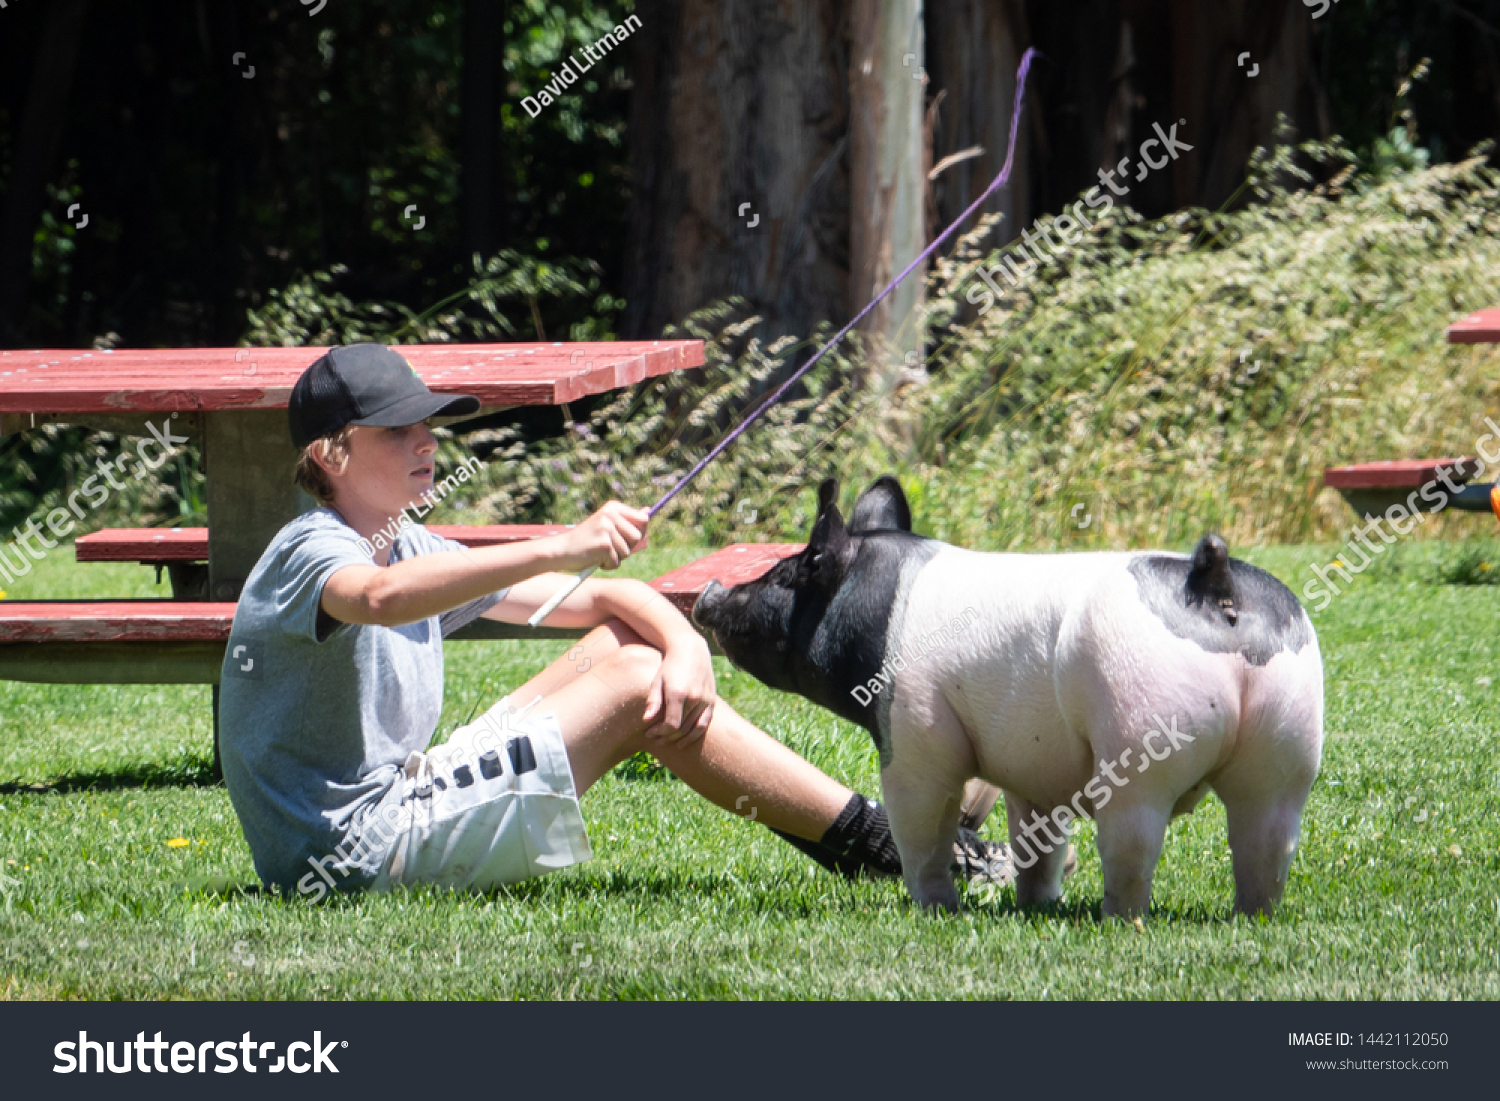 Salinas, California - June 29, 2019: A boy and his pig play in a local park after taking a walk. 4H club.